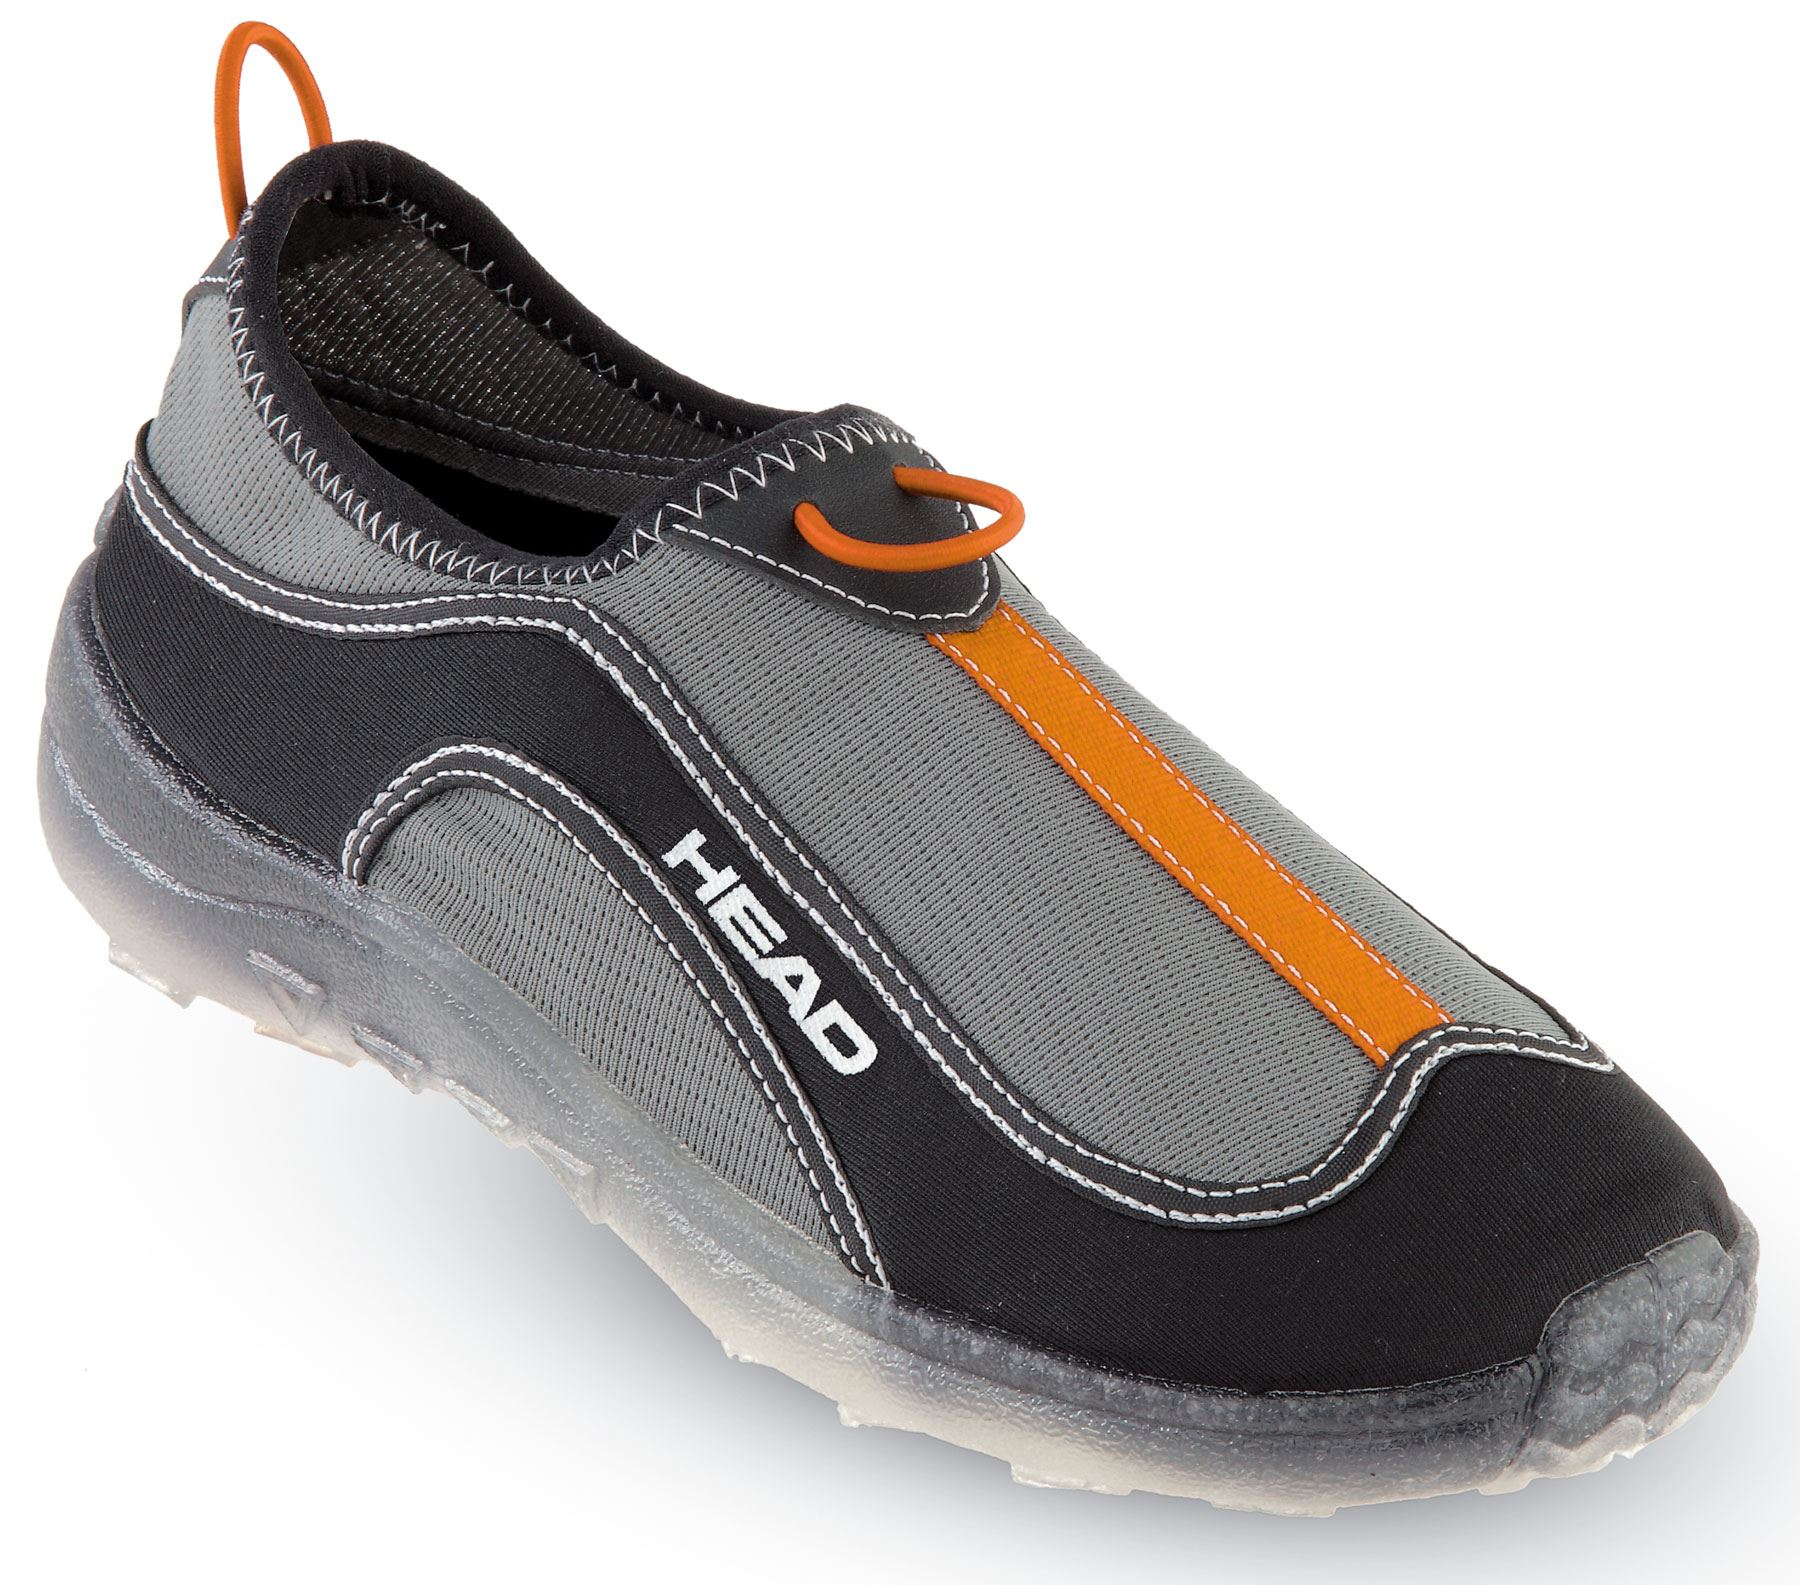 HEAD-Deluxe-Fast-Drain-Aqua-Trainer-Beach-Shoes-Black-Orange-Mens-Ladies